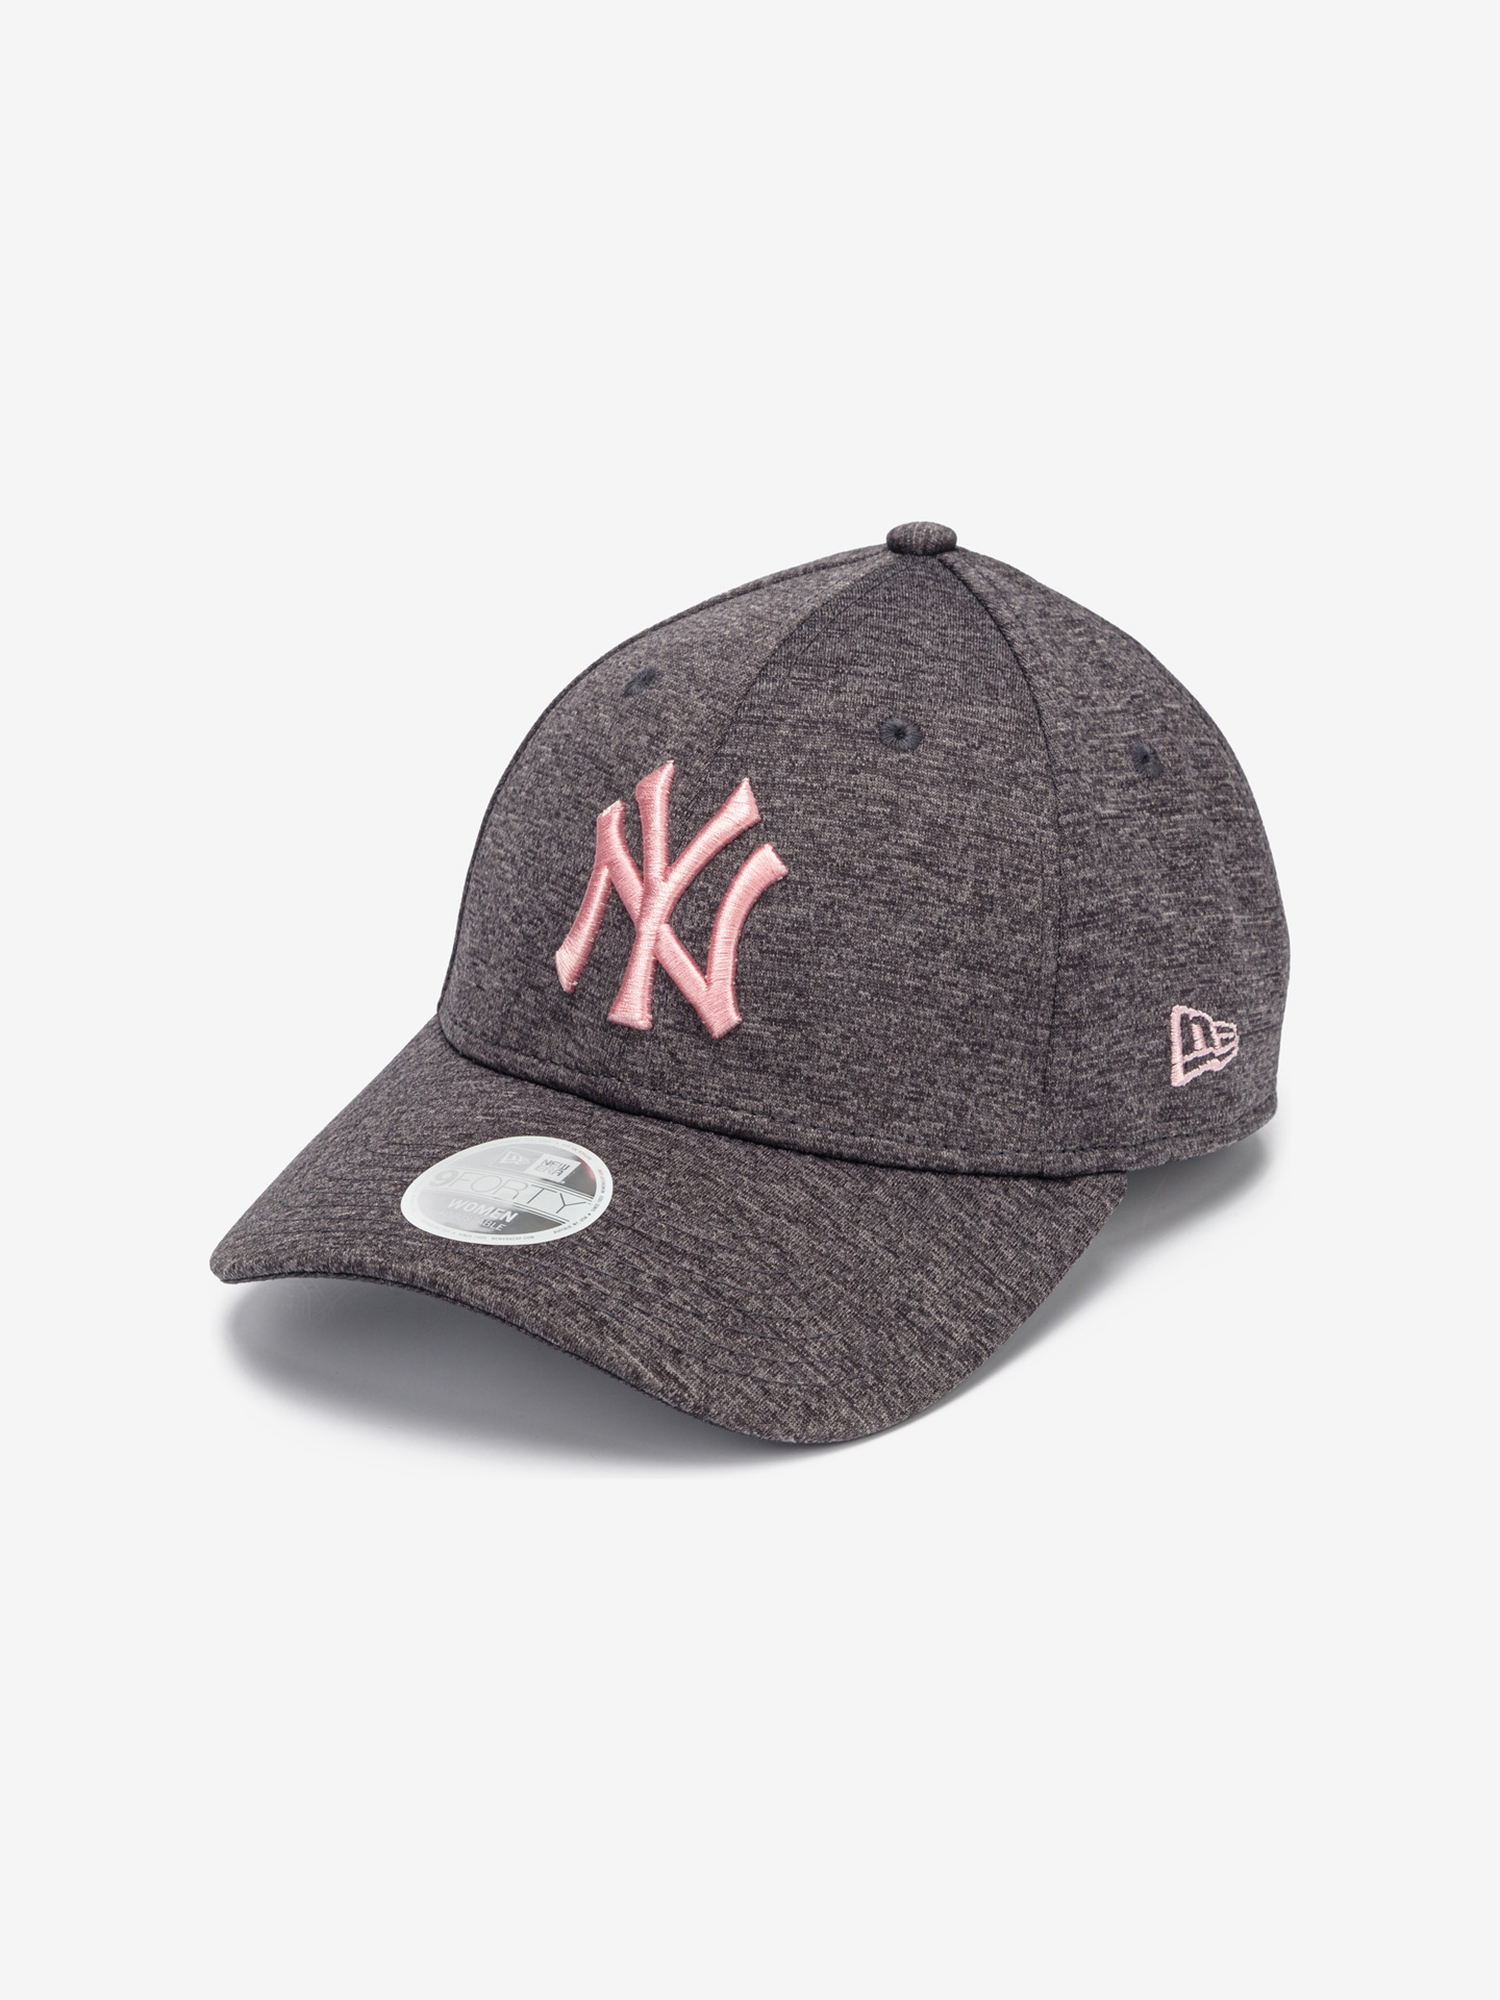 New York Yankees Tech Grey 9Forty Kšiltovka New Era Farebná